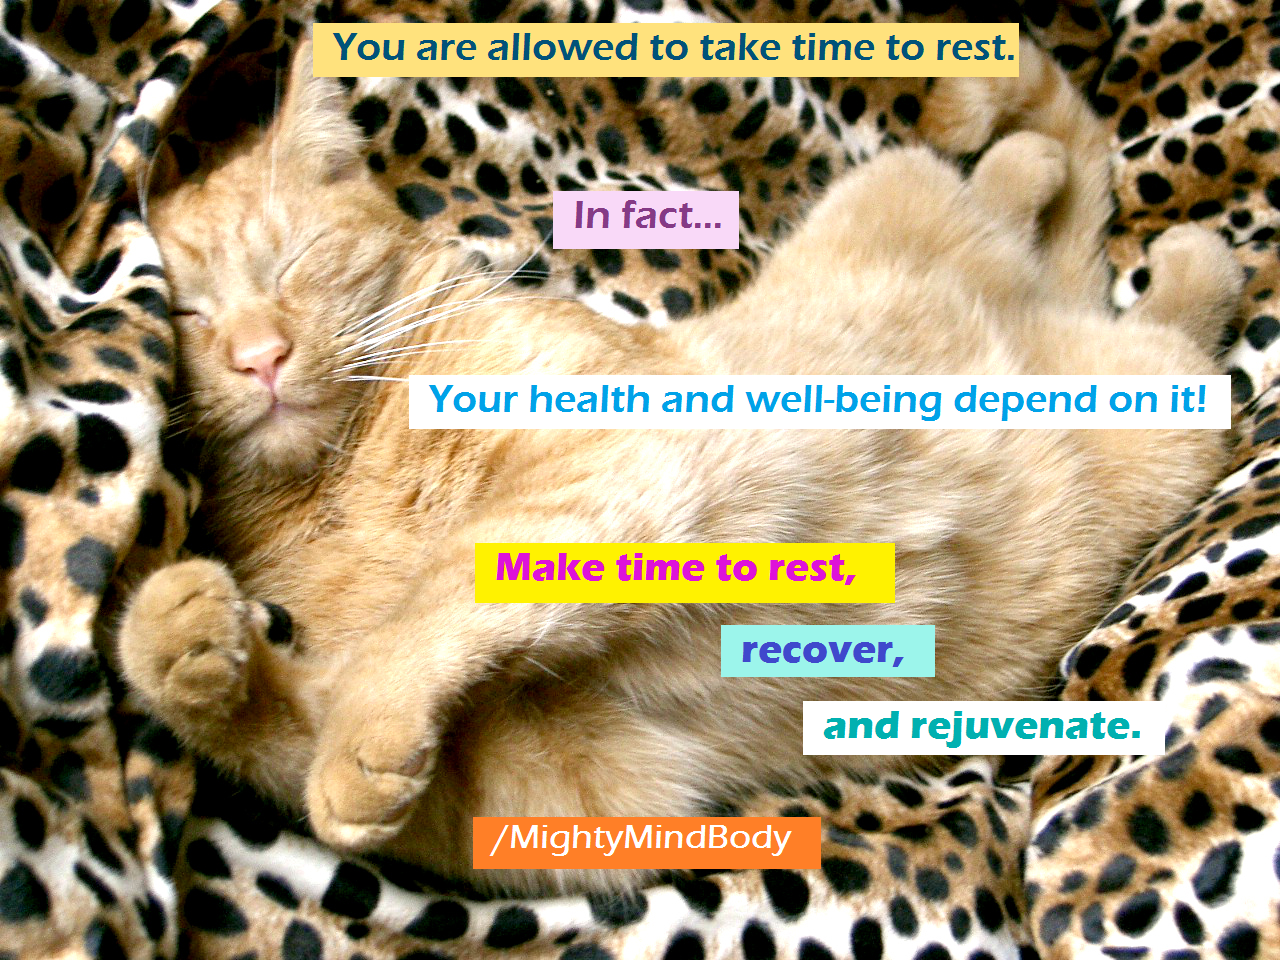 You are allowed to take time to rest. In fact, your health and well-being depend on it! Make time to rest, recover, and rejuvenate.